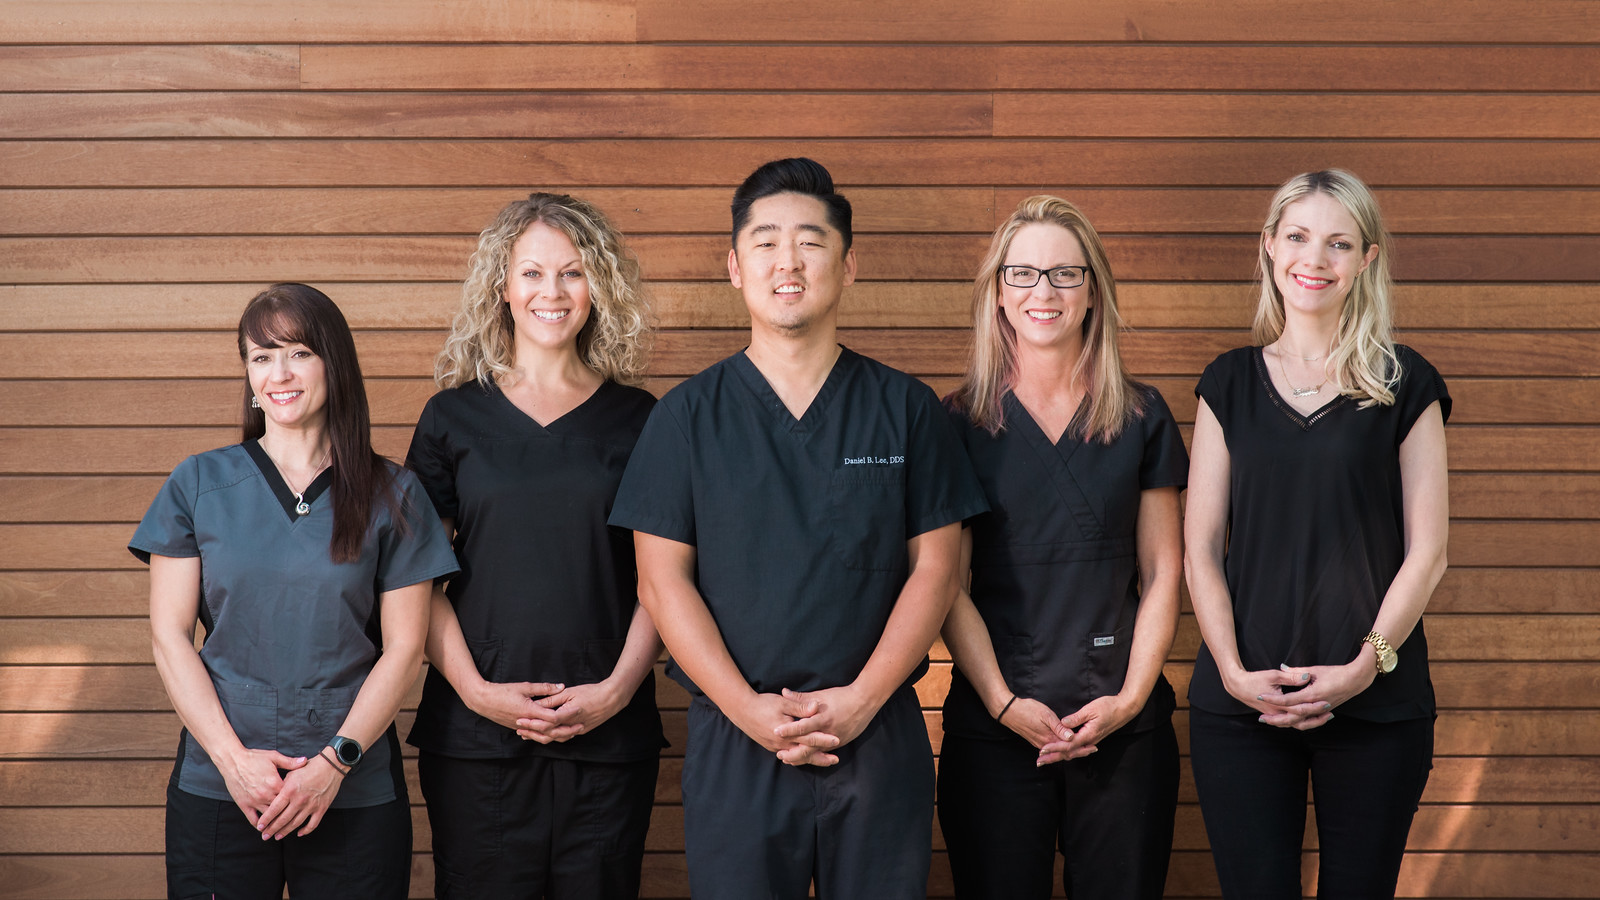 The East Burn Dentistry and Implants team with Dr. Daniel Lee in the middle.